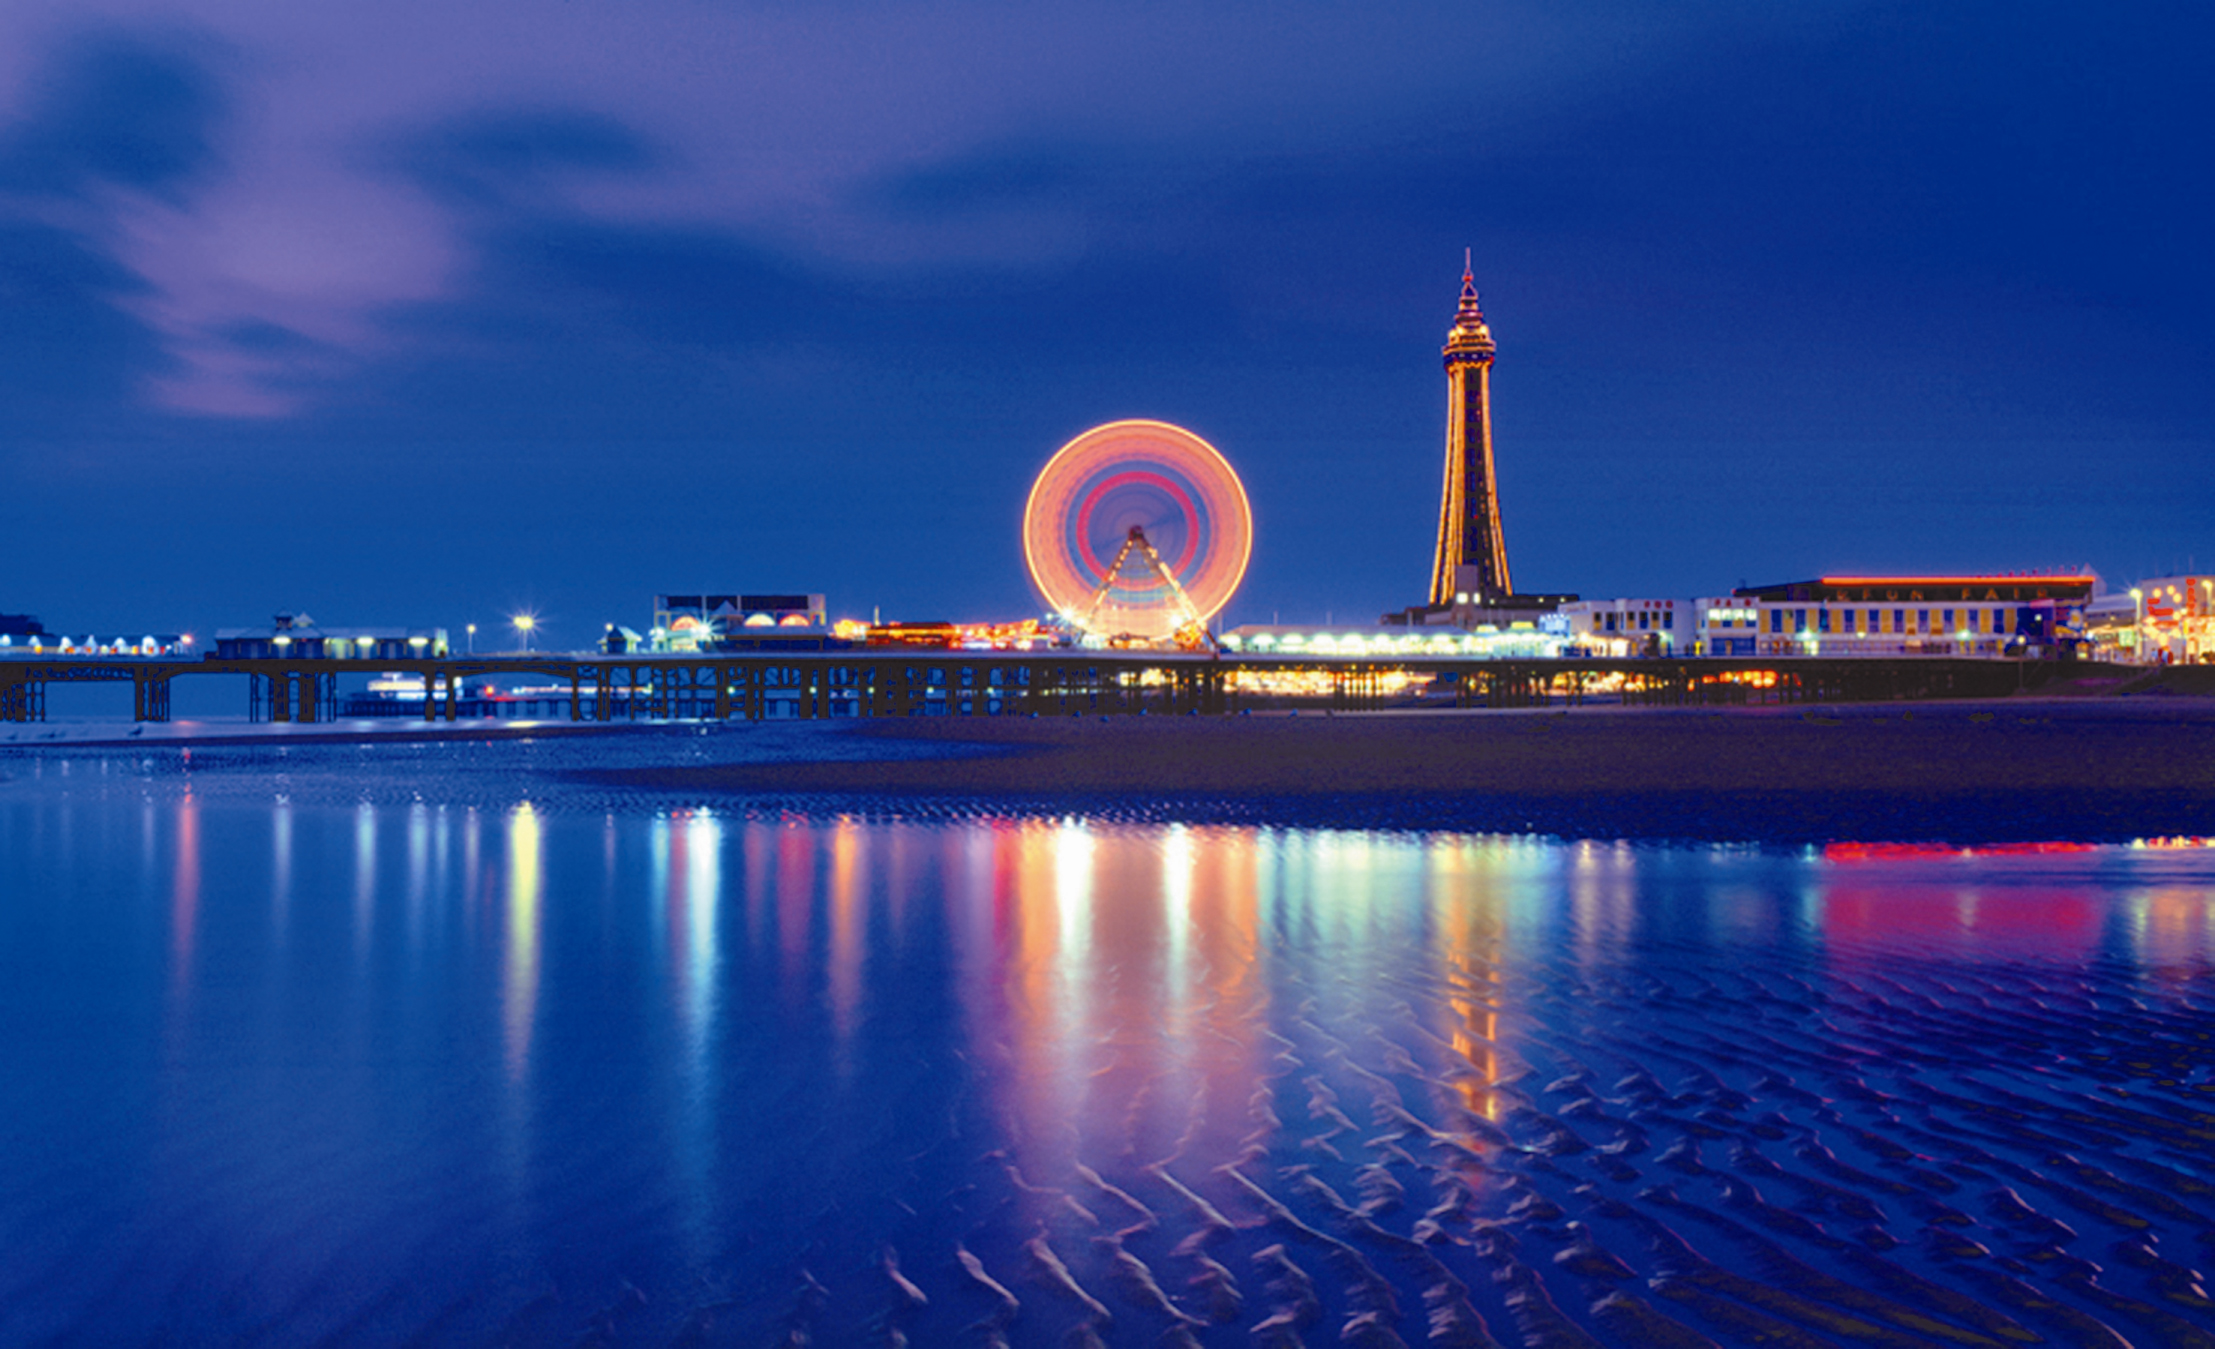 Blackpool Tower Illuminations at Night